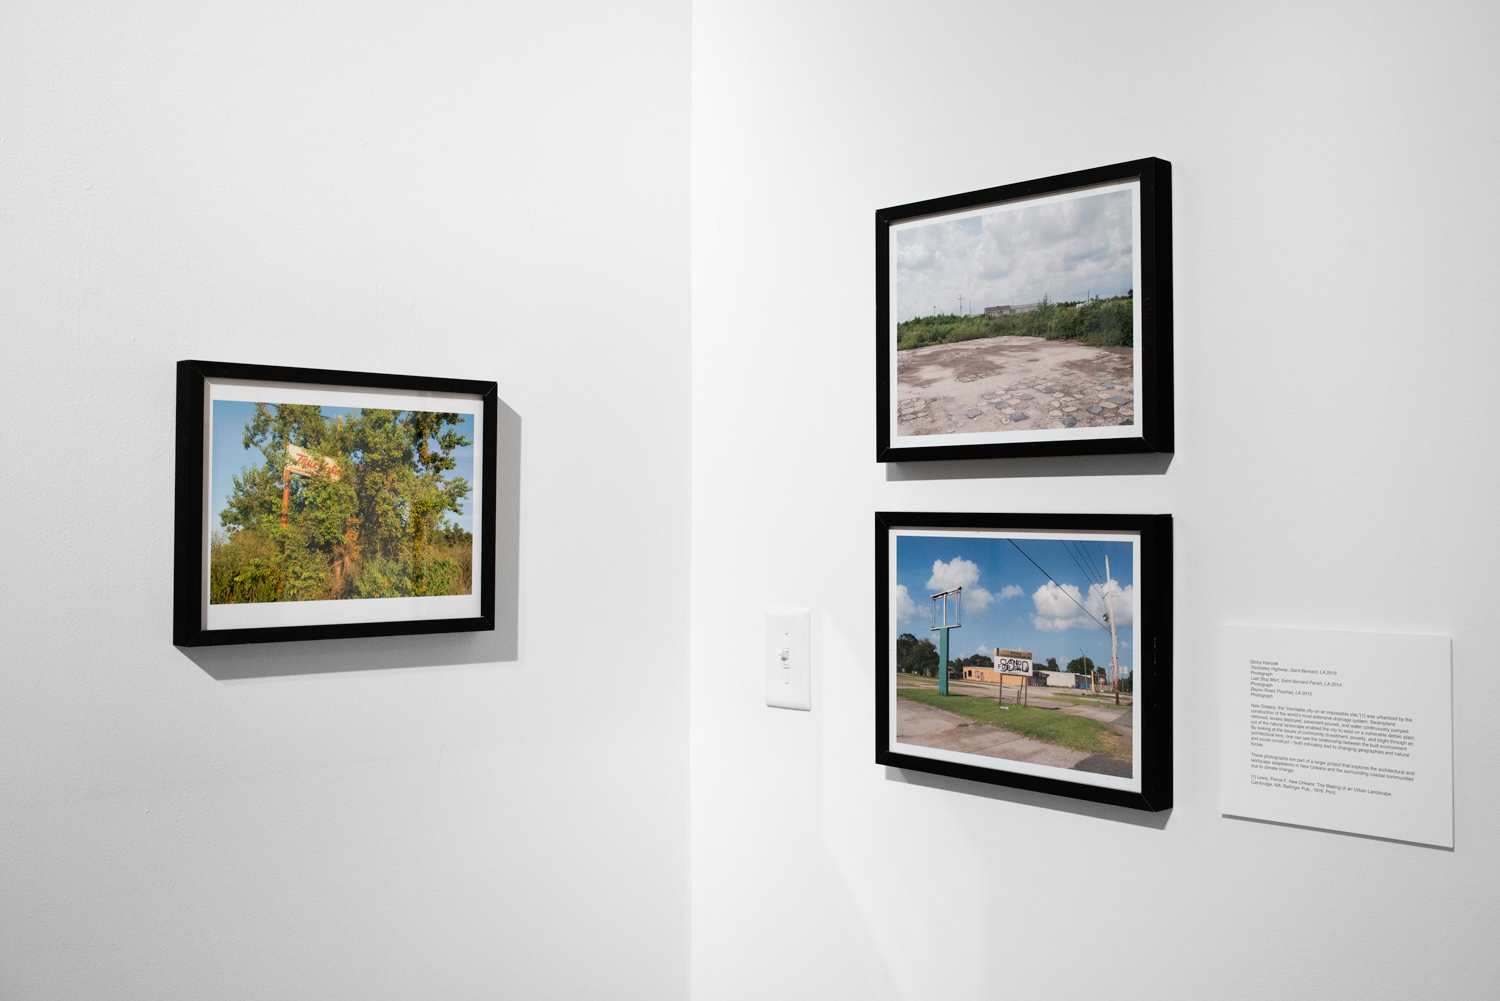 Ginny Hanusik. From left: Yscloskey Highway, Saint Bernard, LA, 2015; Last Stop Mart, Saint Bernard Parish, LA, 2014; Bayou Road, Poydras, LA, 2015. Digital prints.